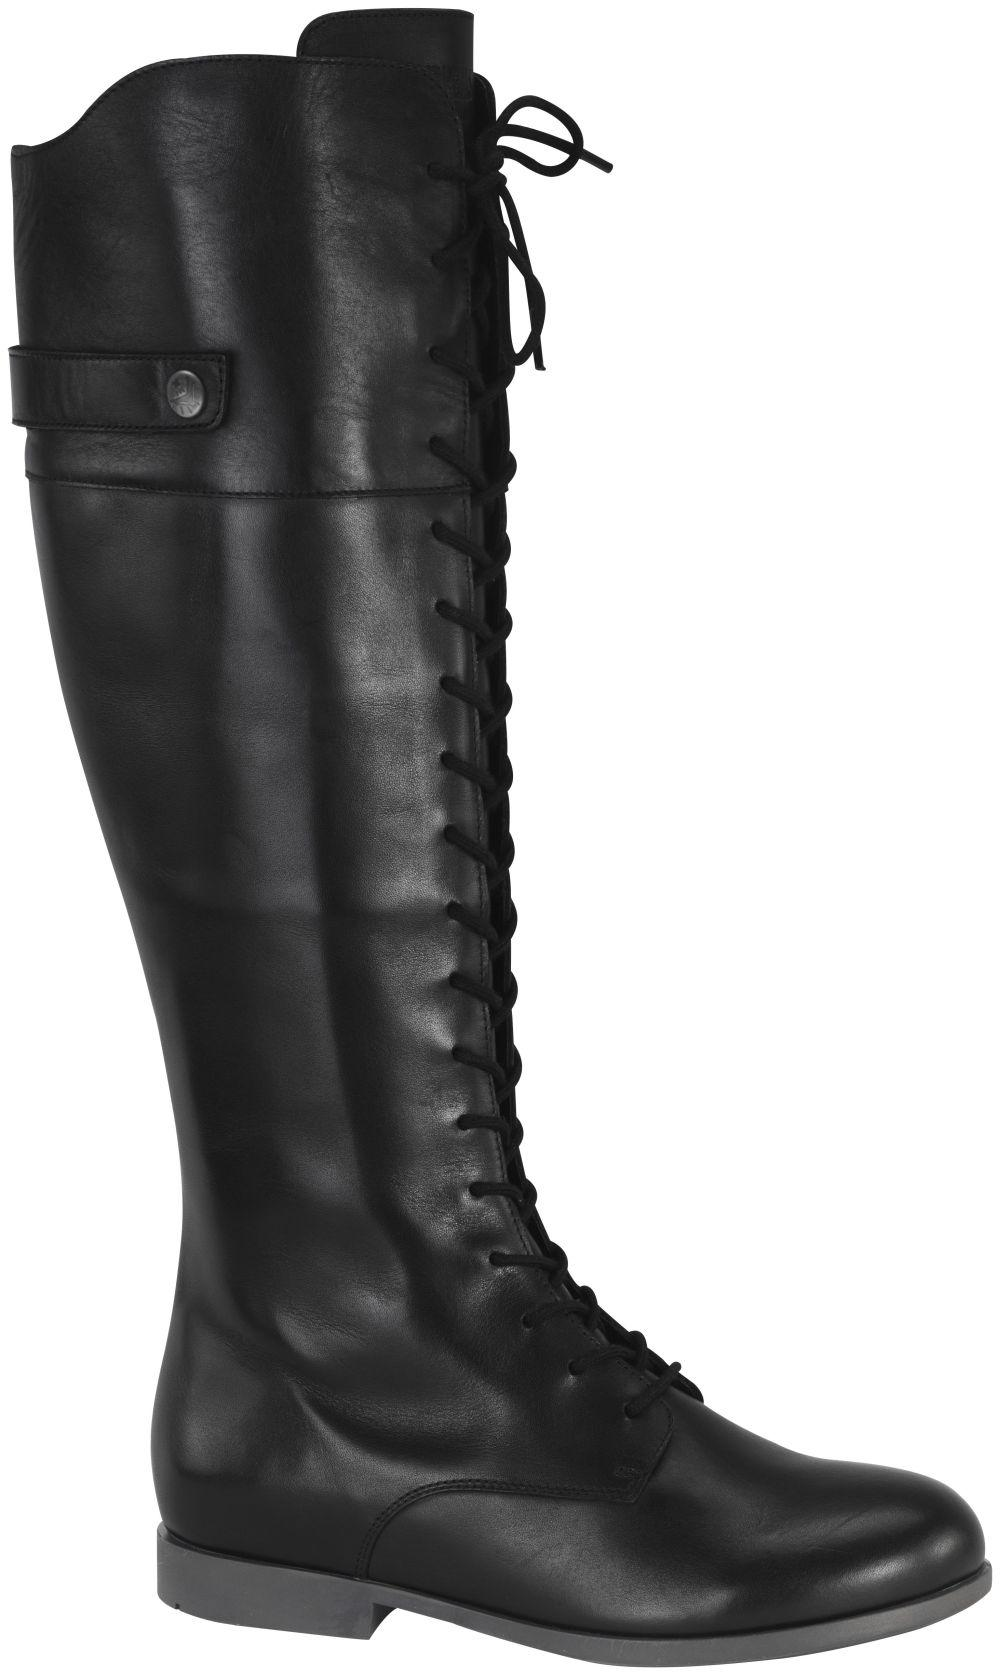 Longford Black natural leather